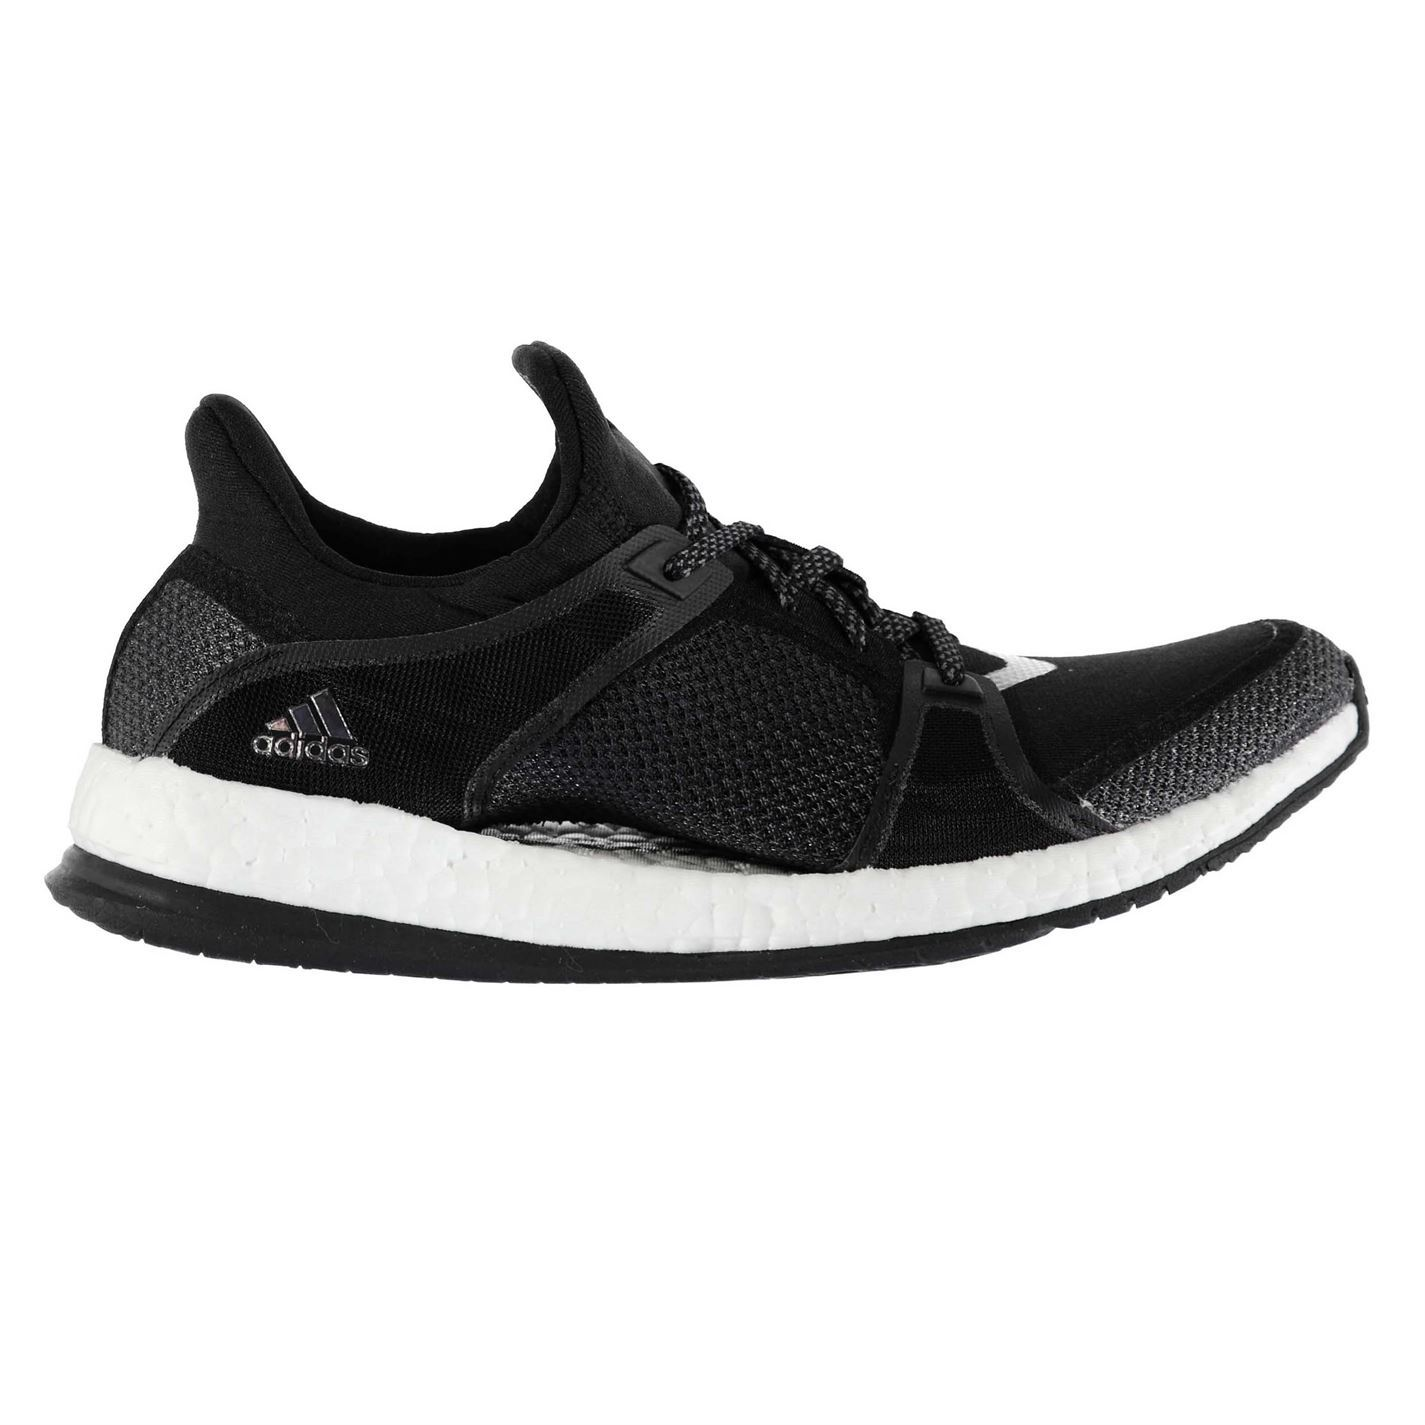 Adidas Damenschuhe Lace PureBOOST XTRA Training Schuhes Lace Damenschuhe Up Padded Ankle Collar Panelled a47992